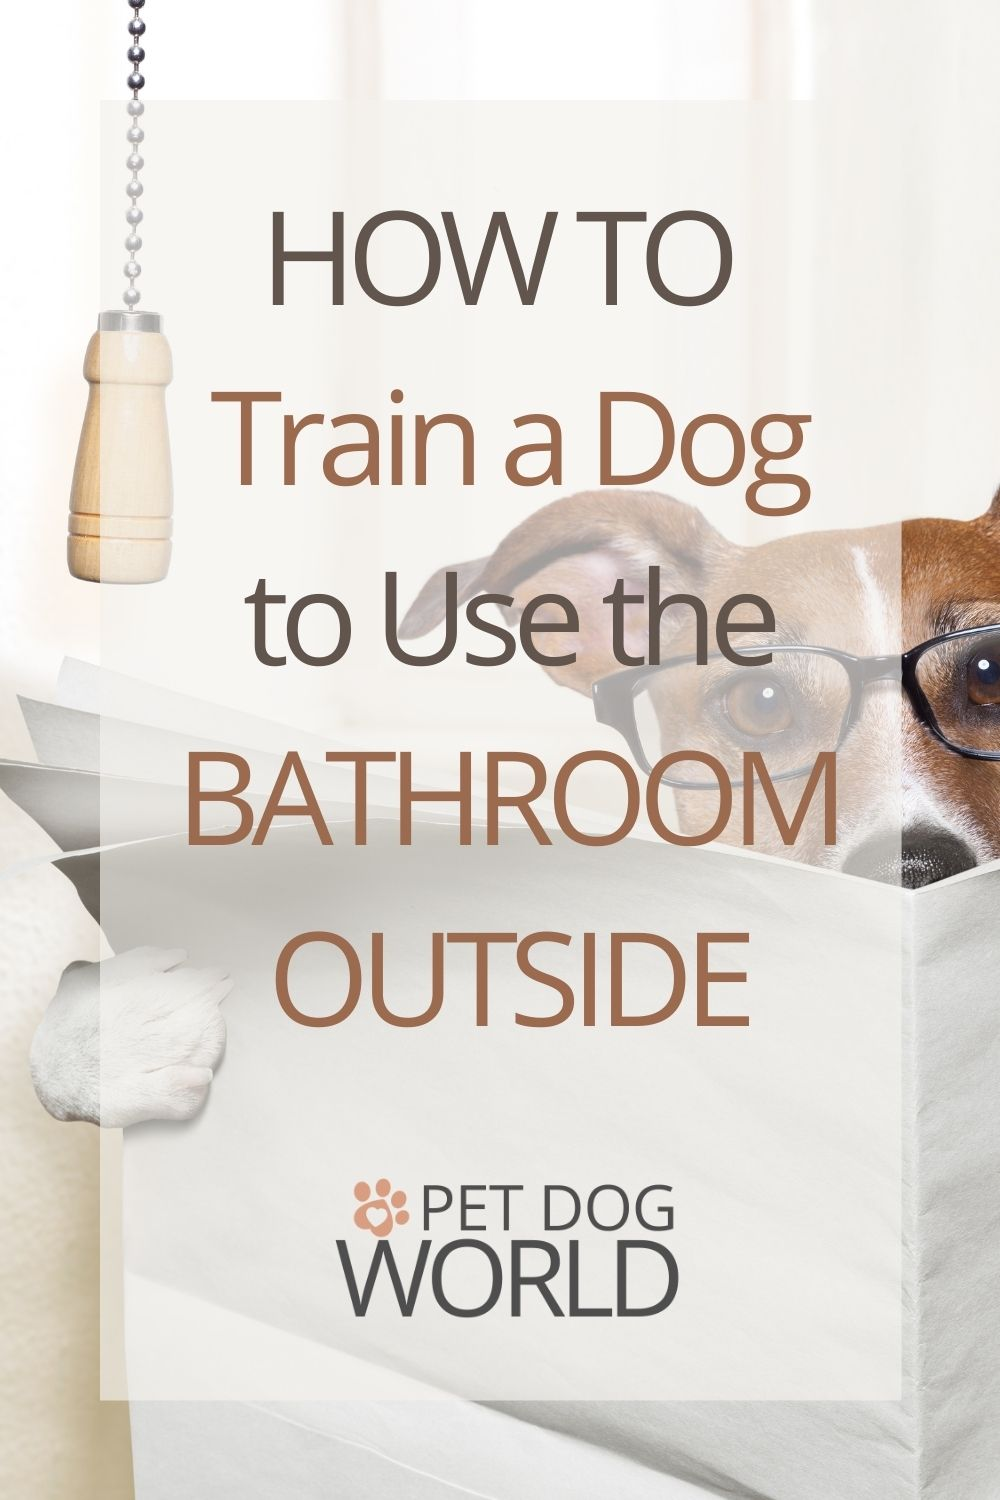 How to train a dog to use the bathroom outside